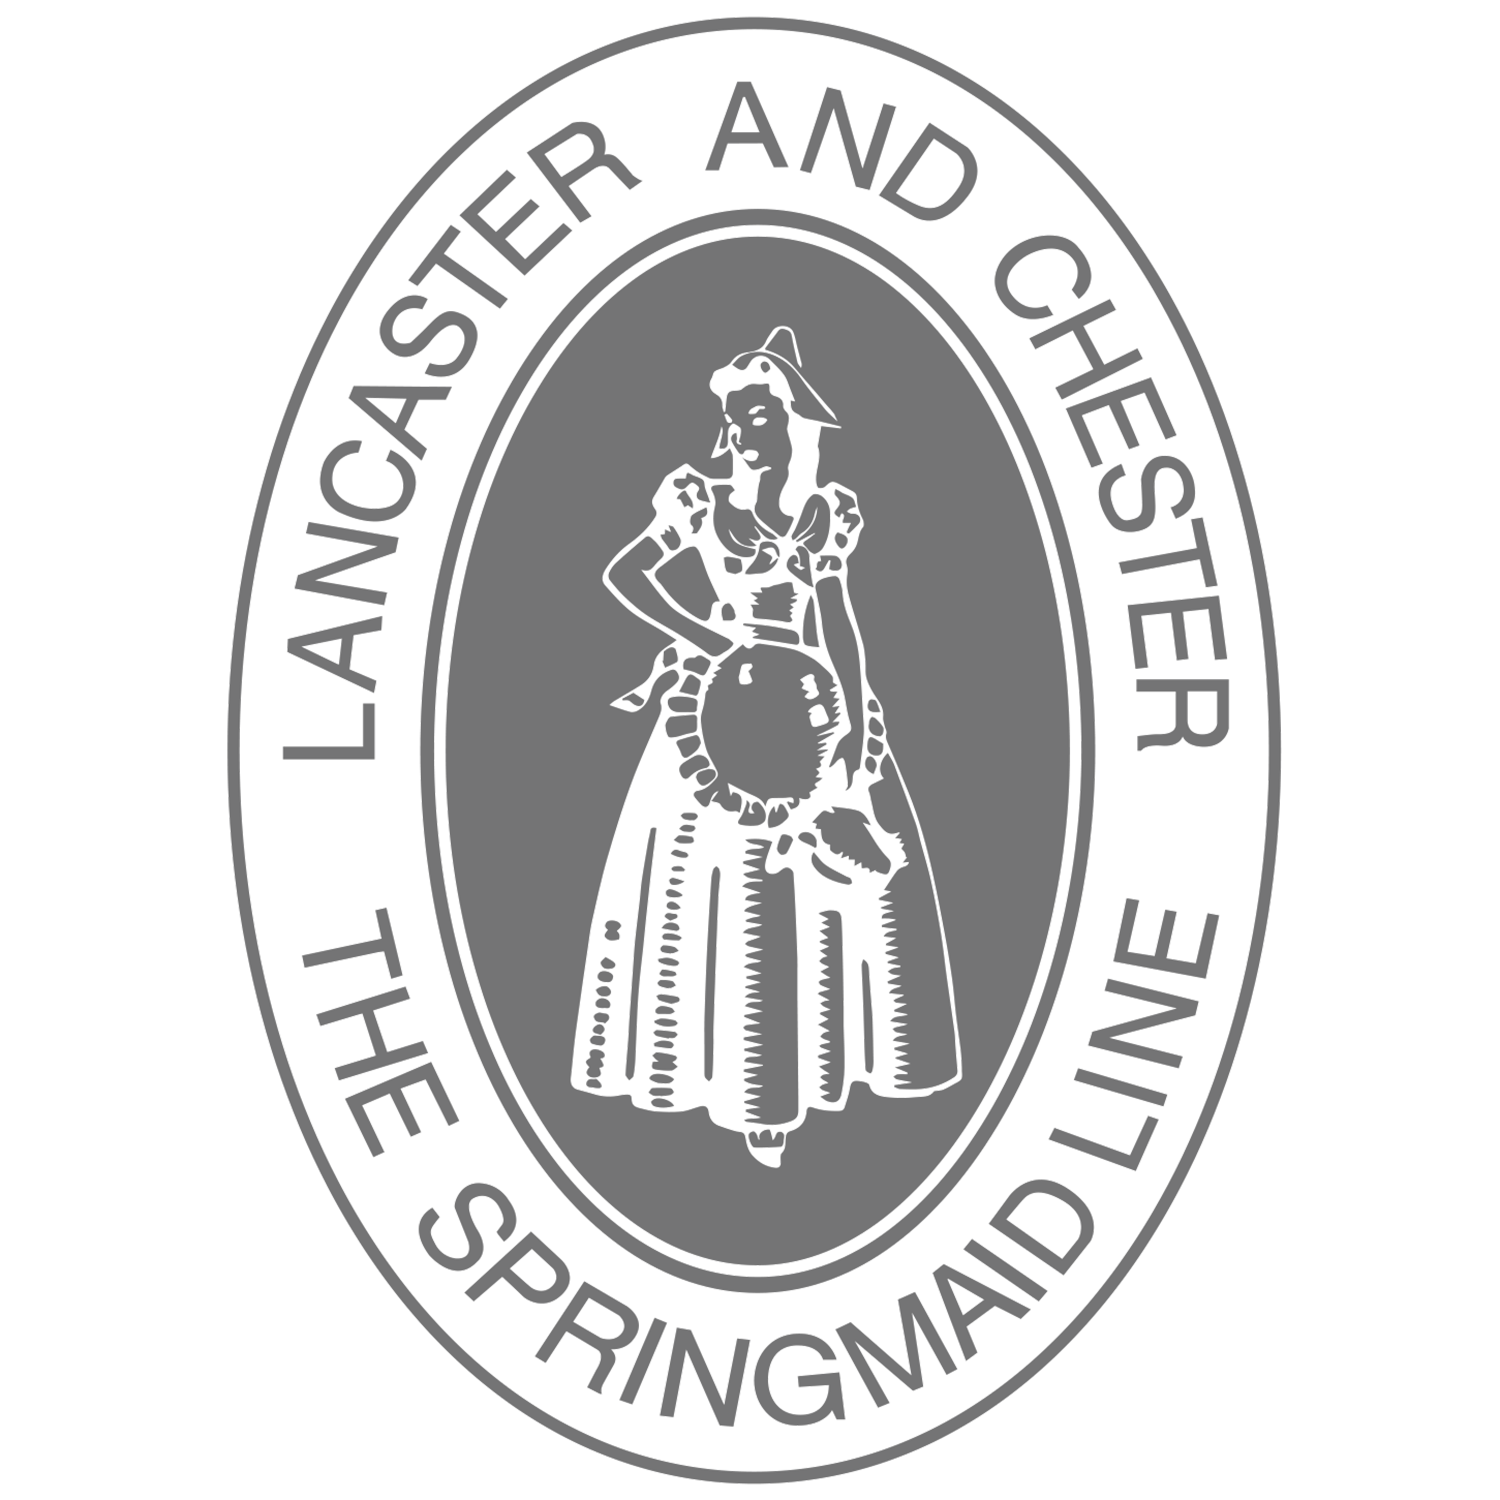 Lancaster and Chester Logo Grey.jpg